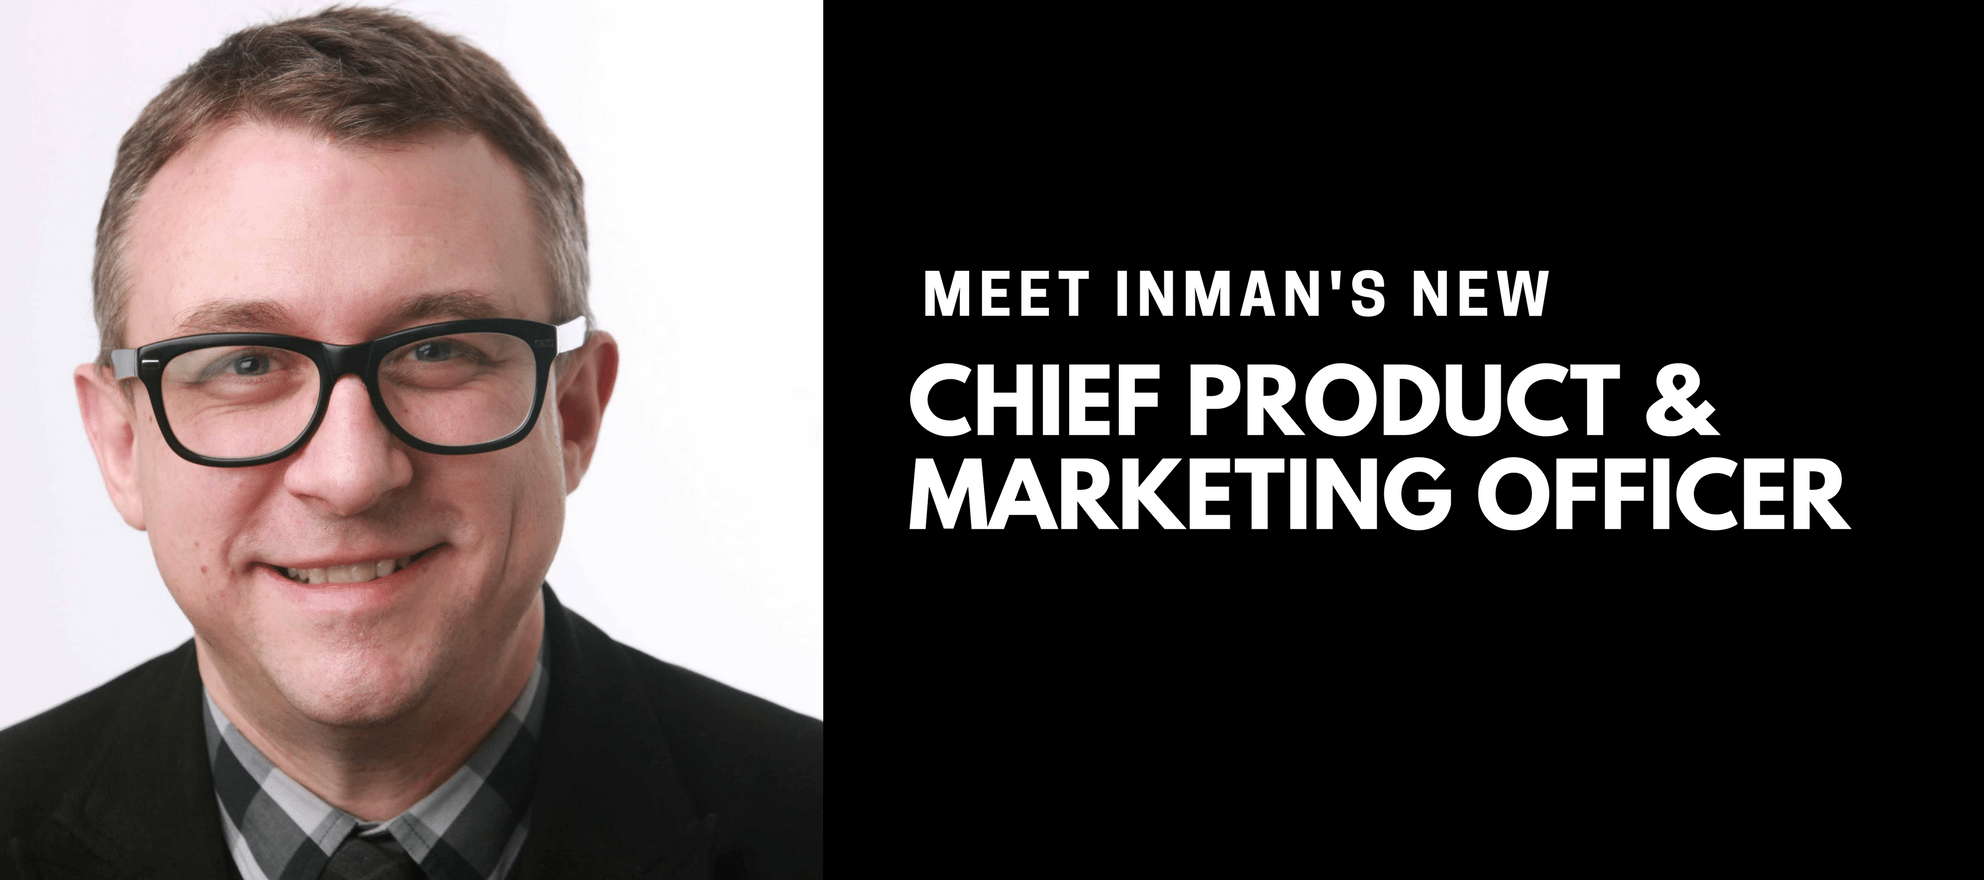 From our new Chief Product & Marketing Officer: People, purpose and passion